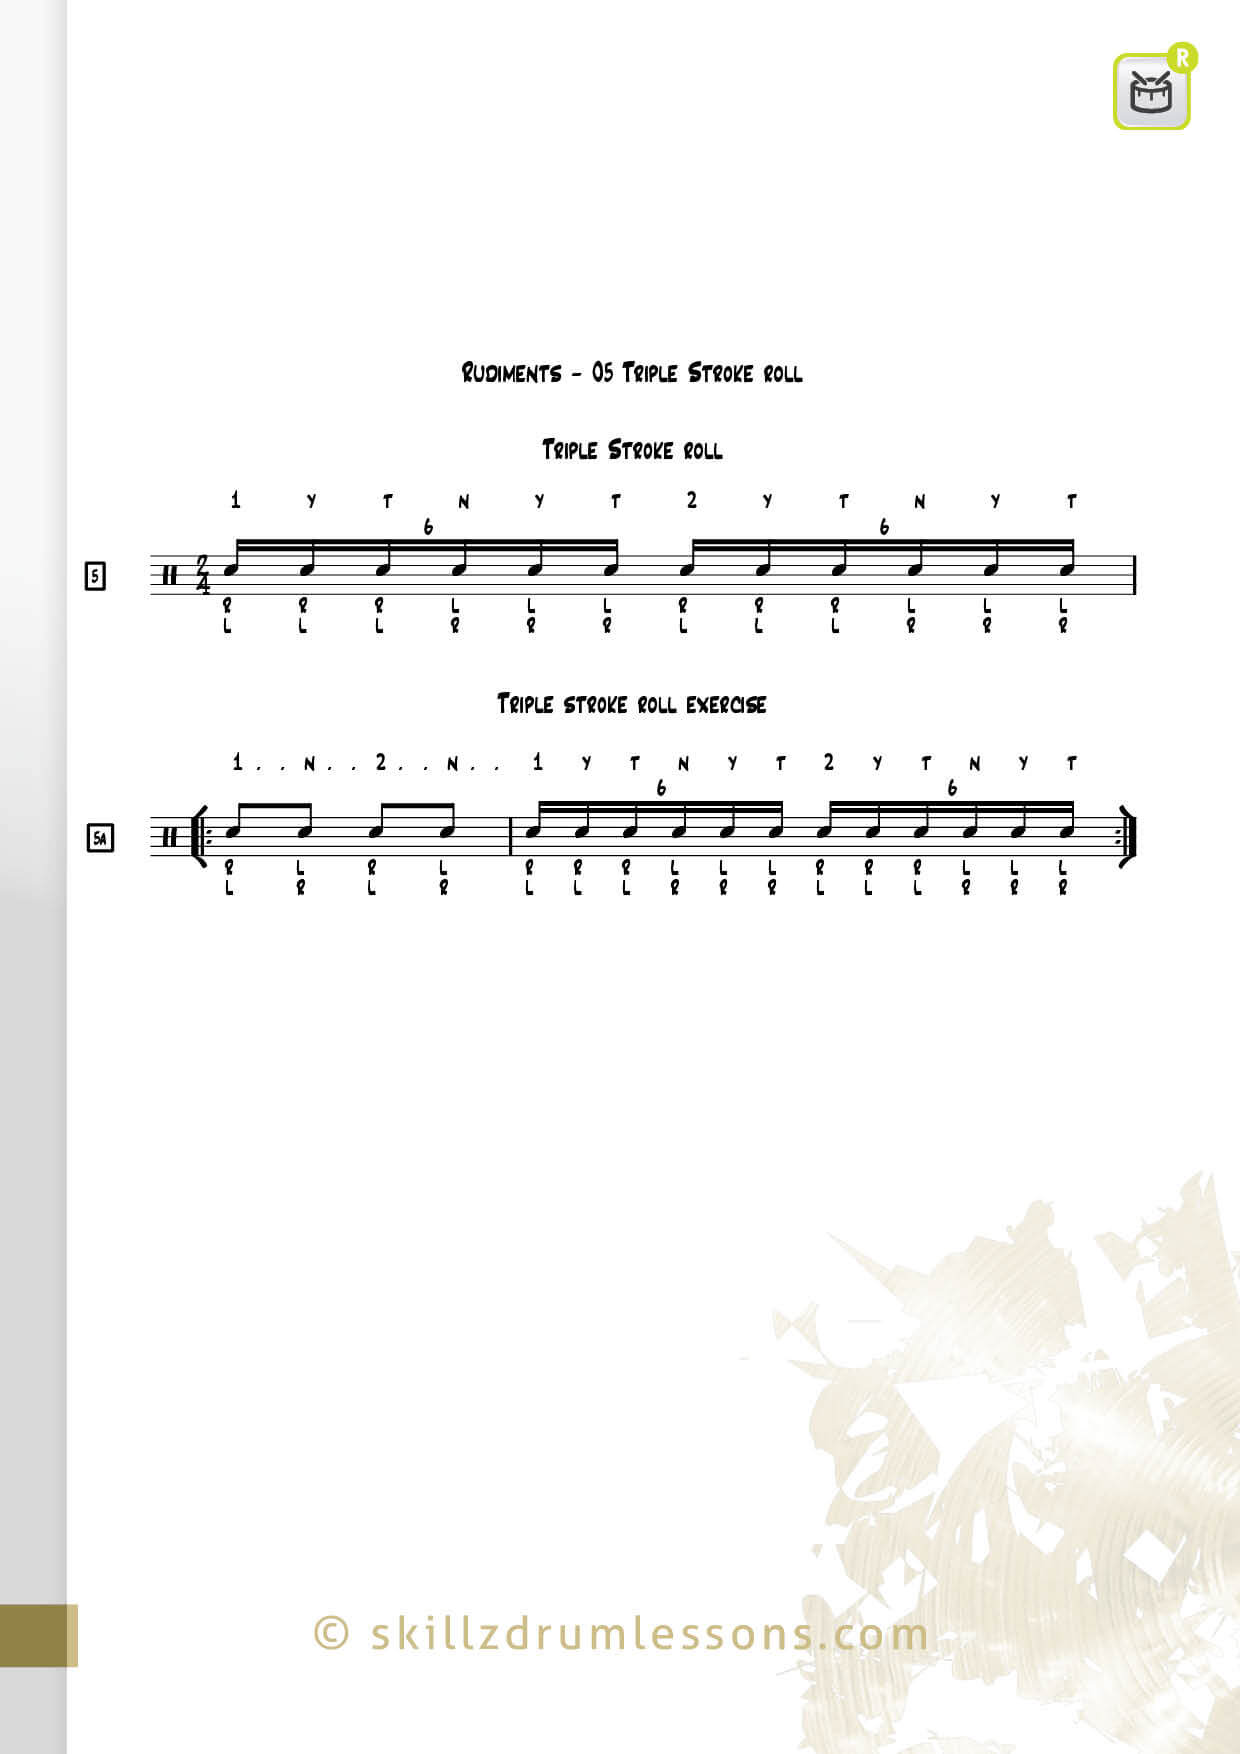 This is an image of the Official 40 Essential P.A.S. Rudiments #5 The Triple Stroke Roll by Skillz Drum Lessons